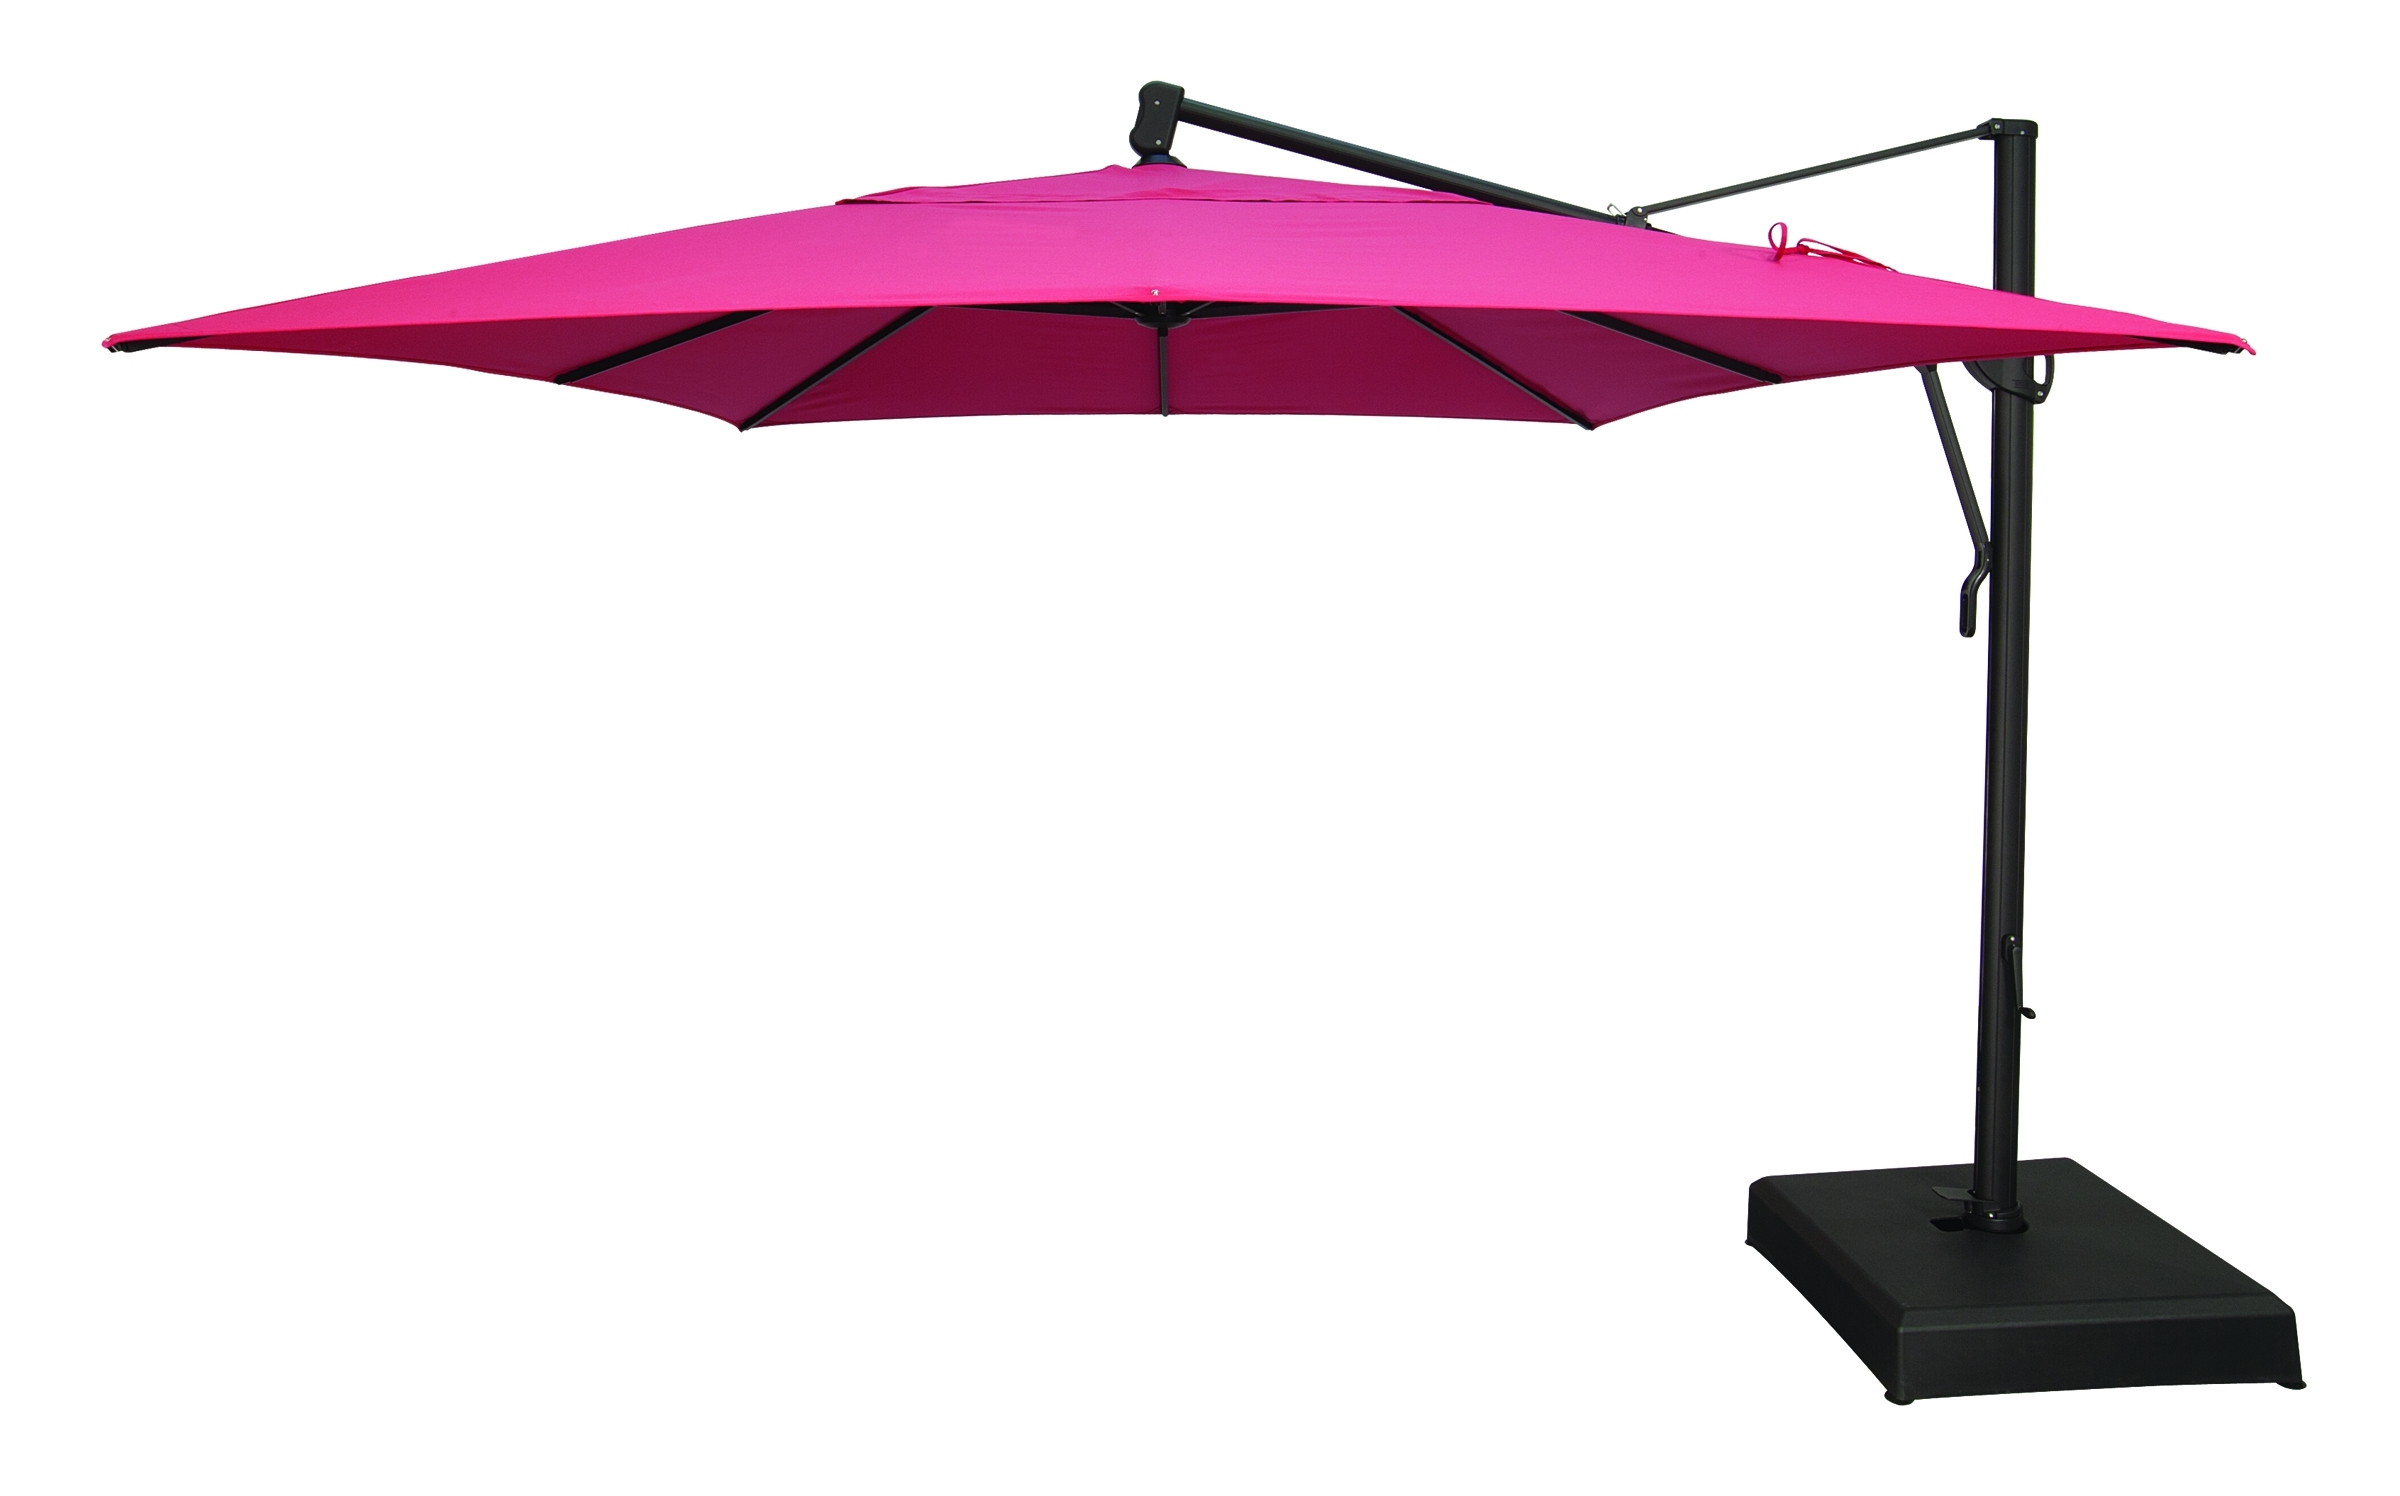 Well Known Pink Patio Umbrellas Regarding Pink Fabric Outdoor Umbrella With Black Iron Base And Swing Arm Of (View 8 of 20)